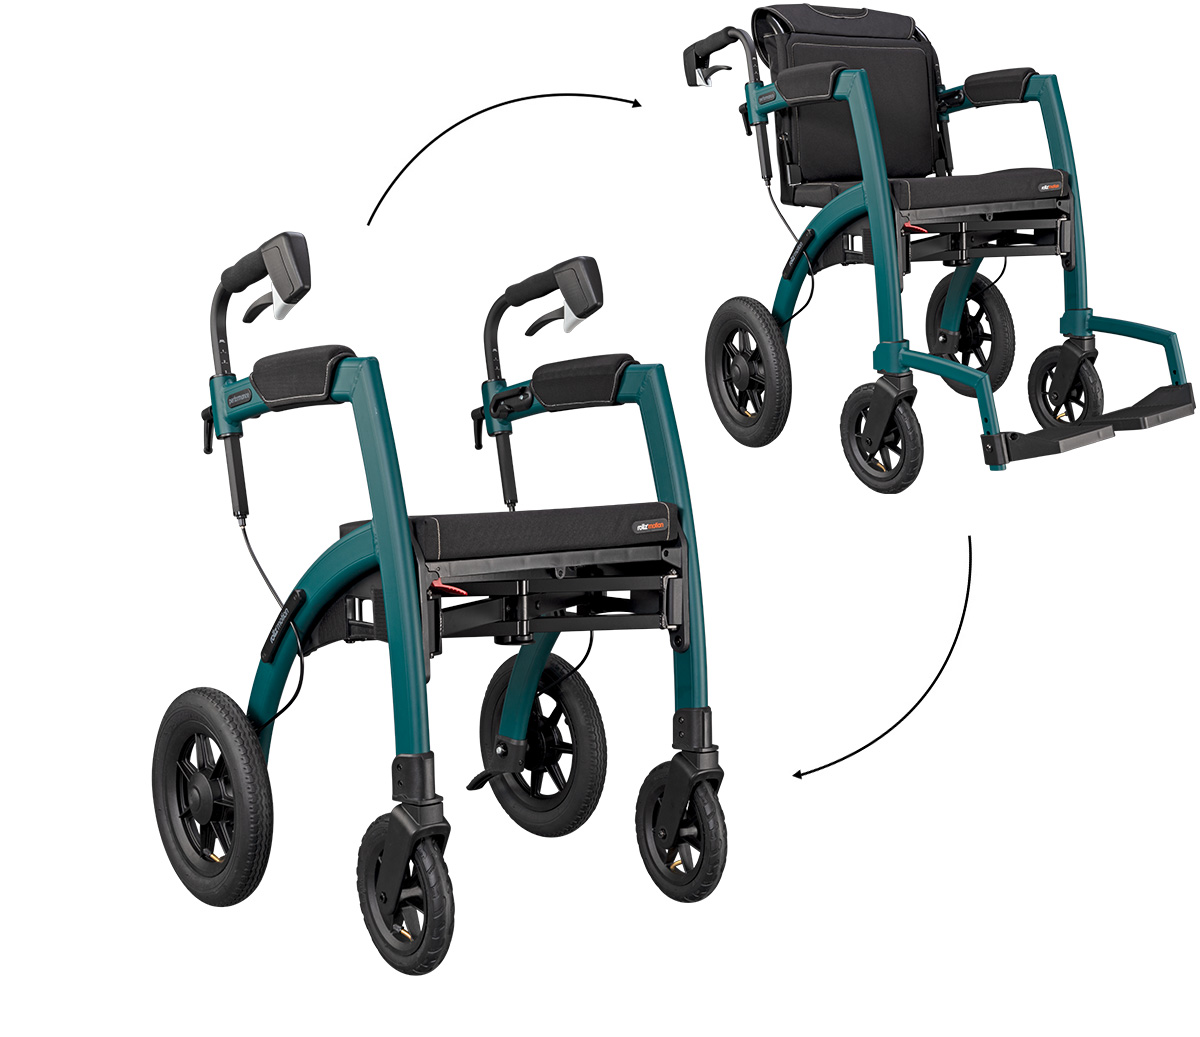 Rollz Motion Performance is the luxury version of the a Rollz rollator